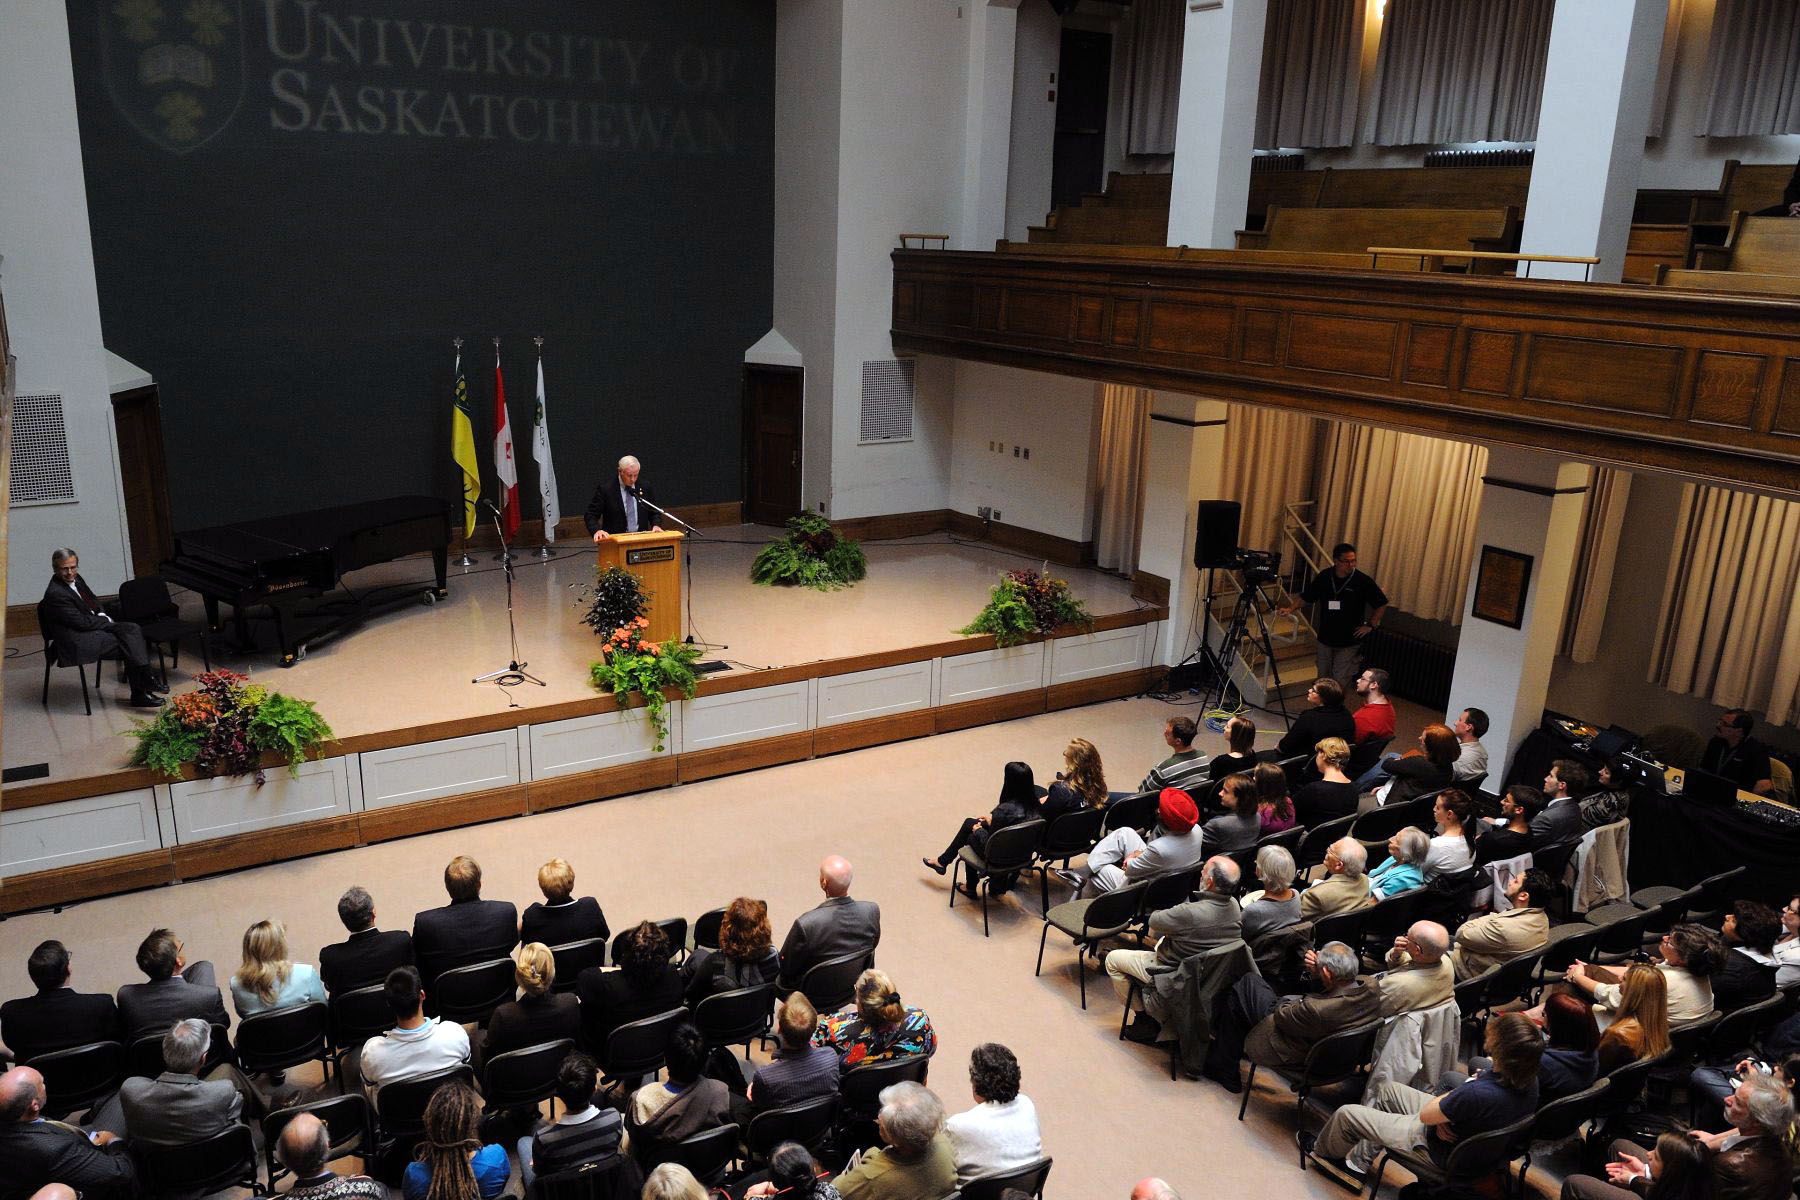 Hundreds of students gathered in Convocation Hall to listen to His Excellency's address.